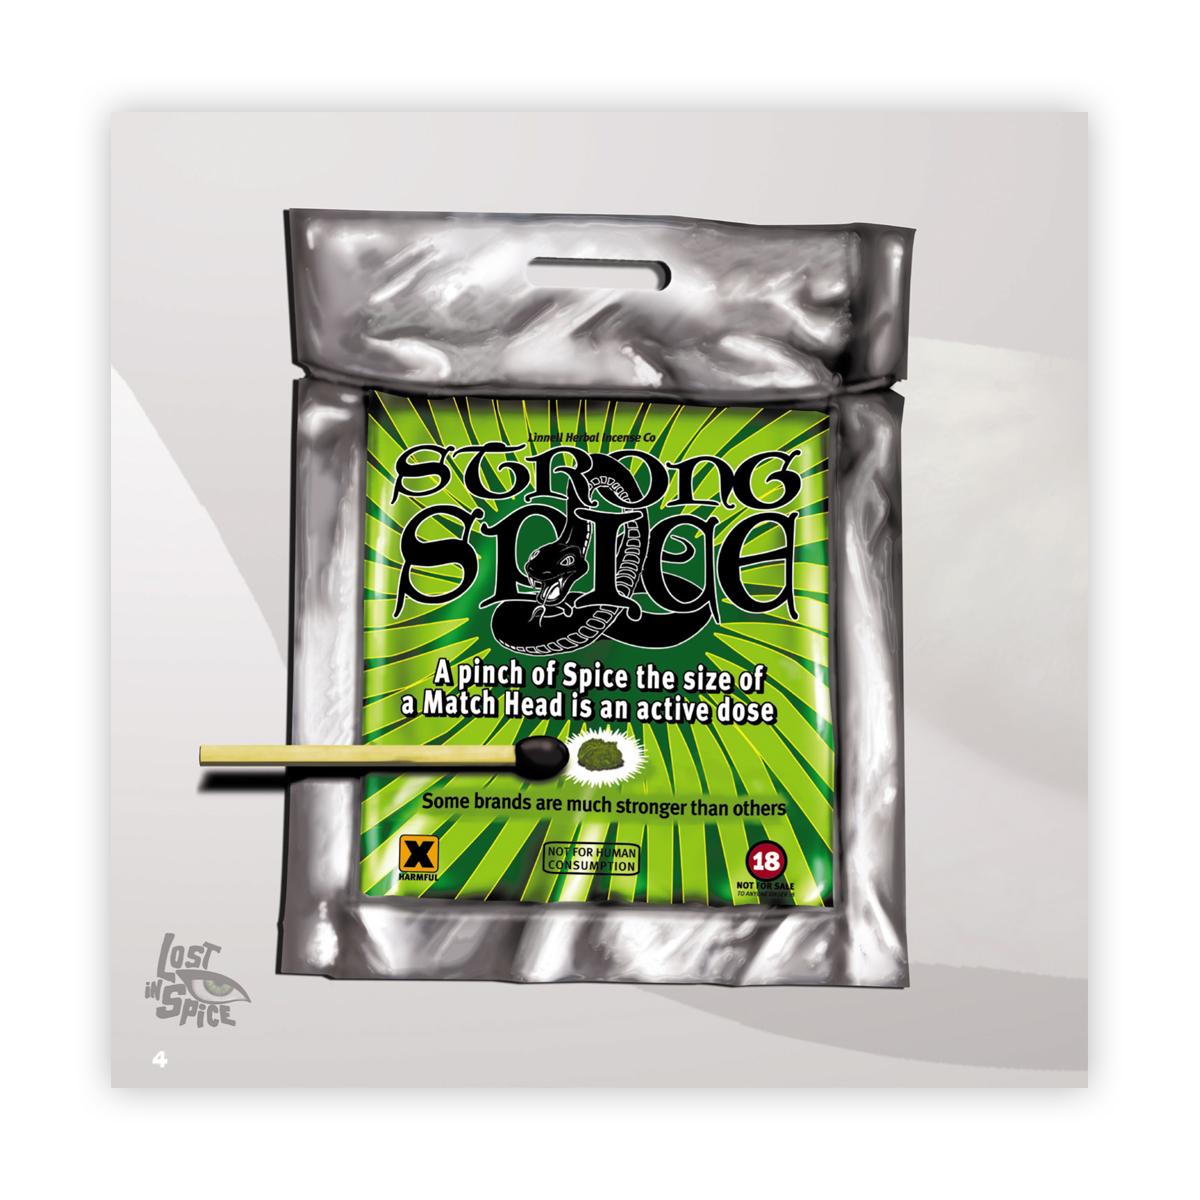 how to buy synthetic cannabinoids